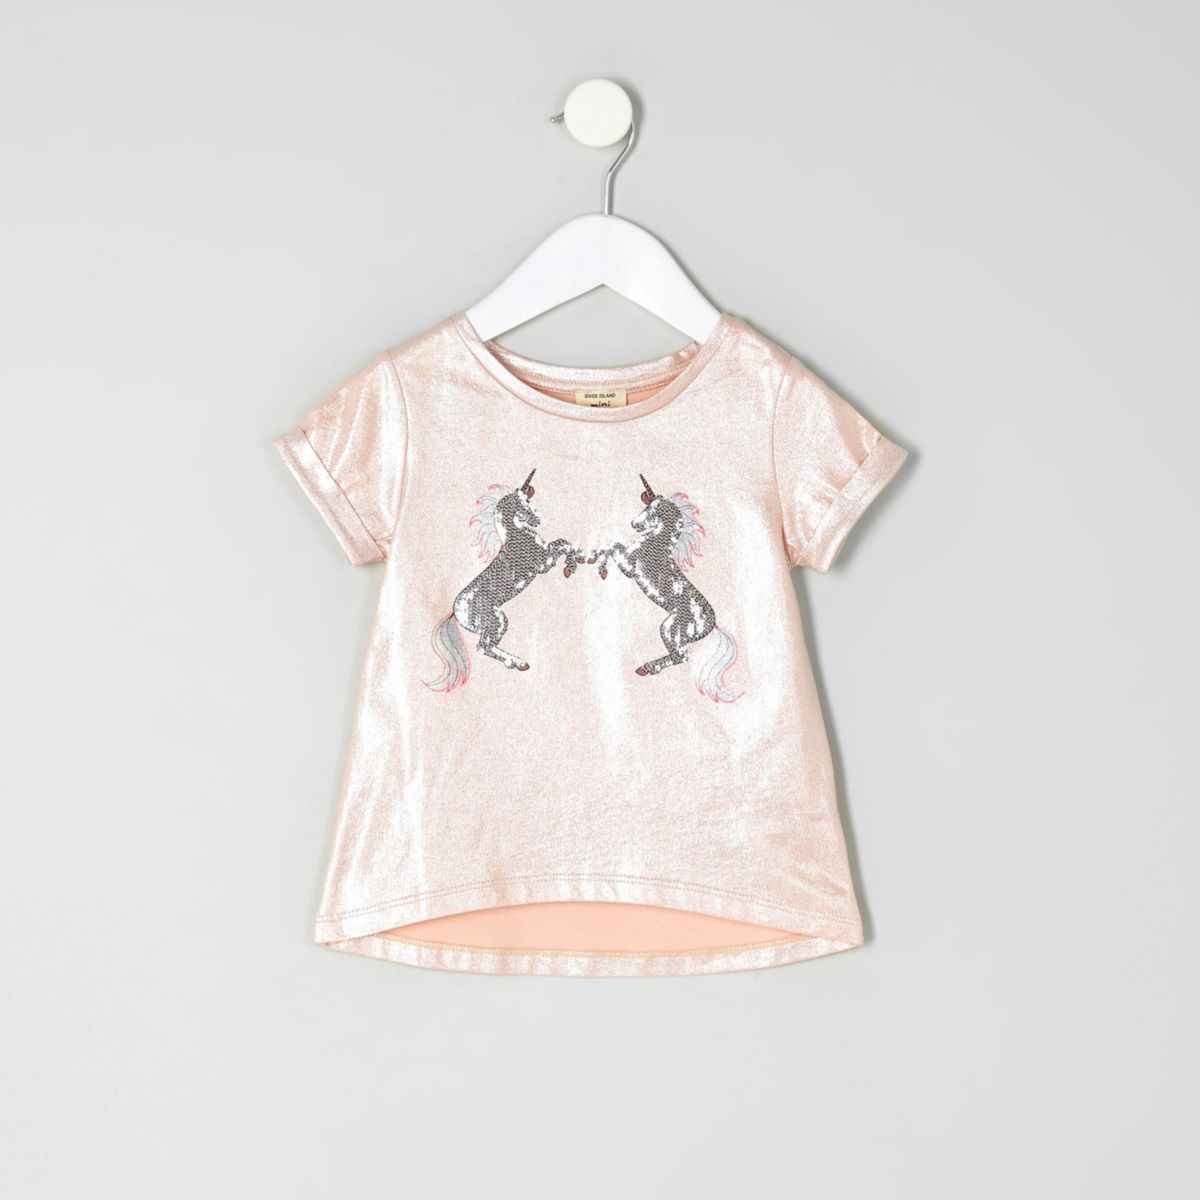 Mini girls pink metallic unicorn T-shirt